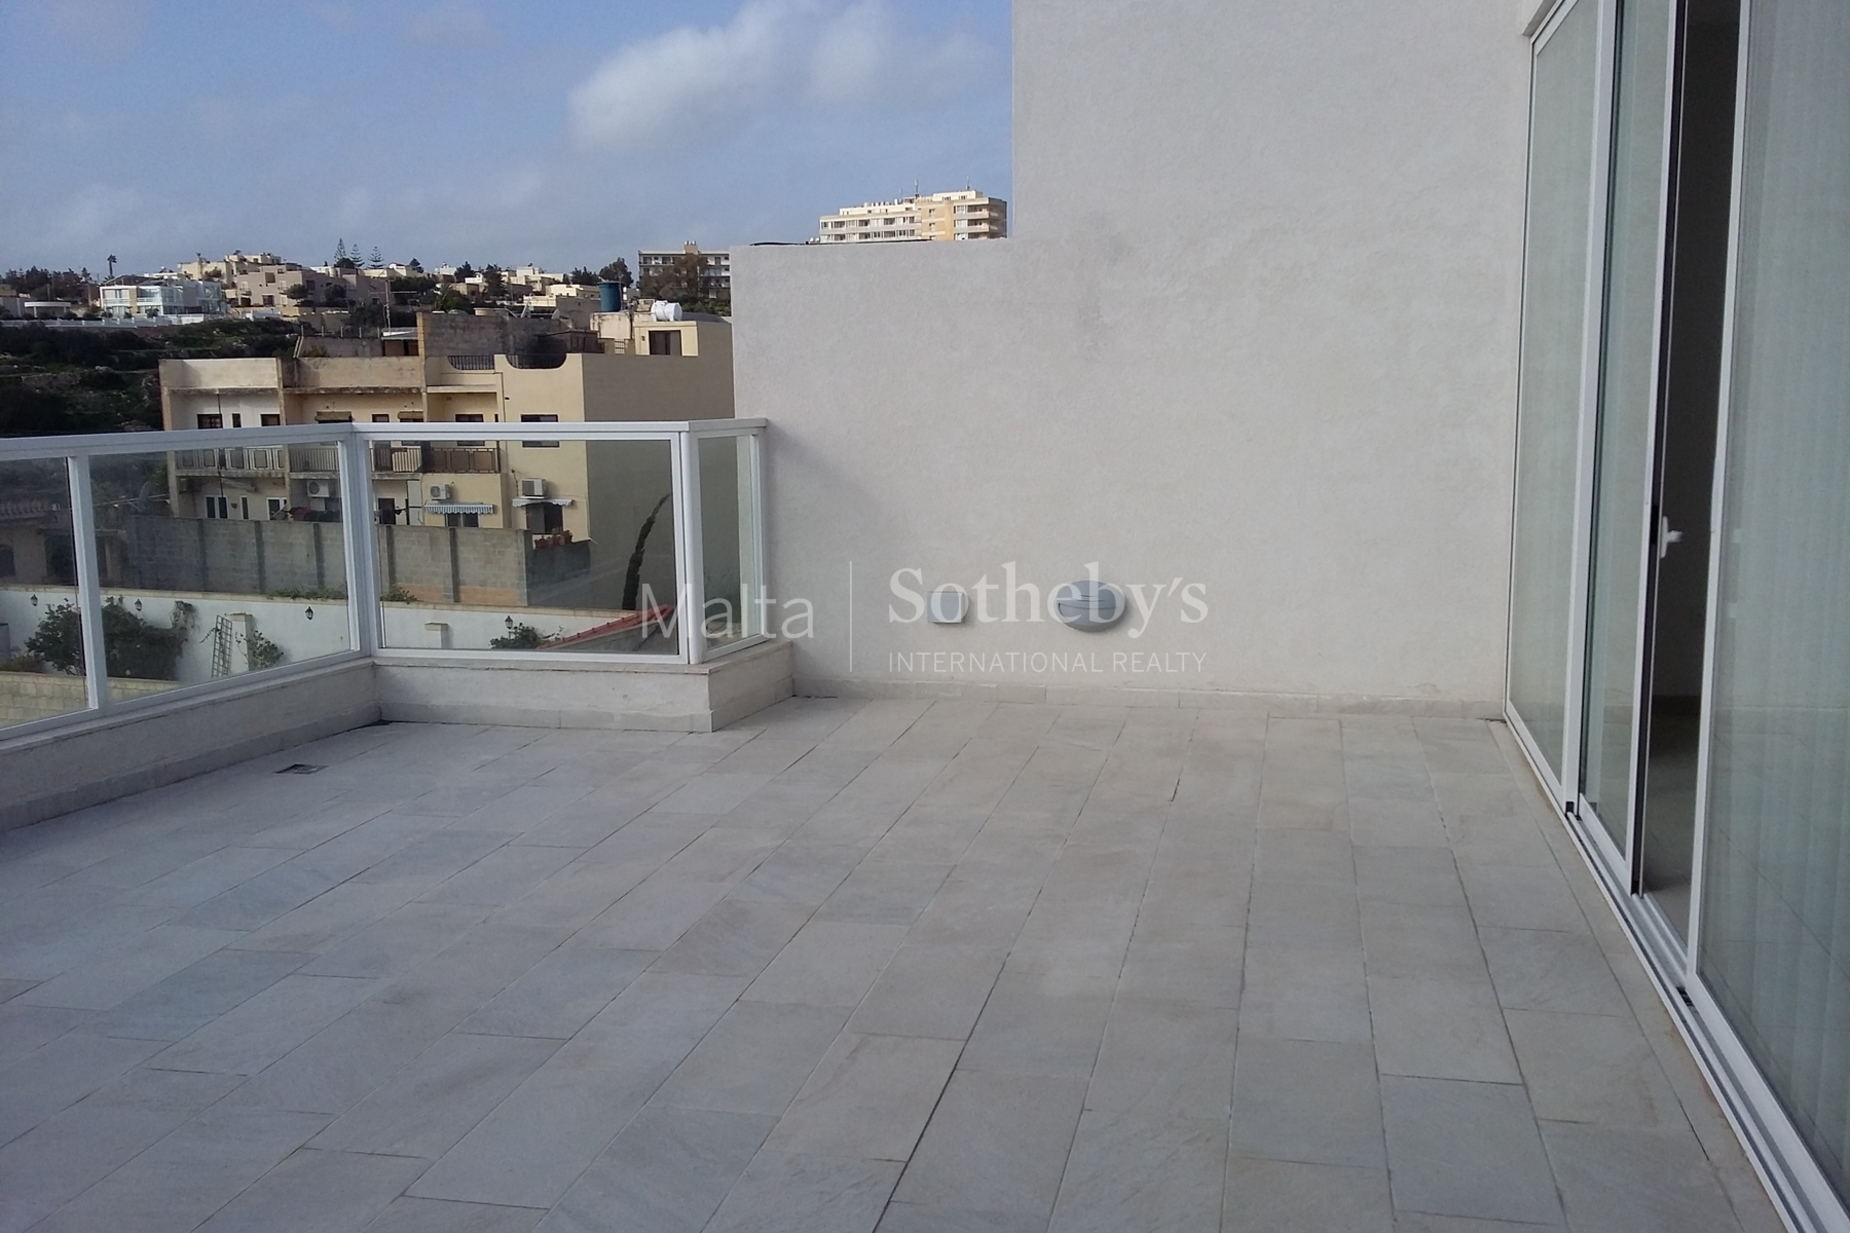 2 bed Penthouse For Rent in Ibragg, Ibragg - thumb 4